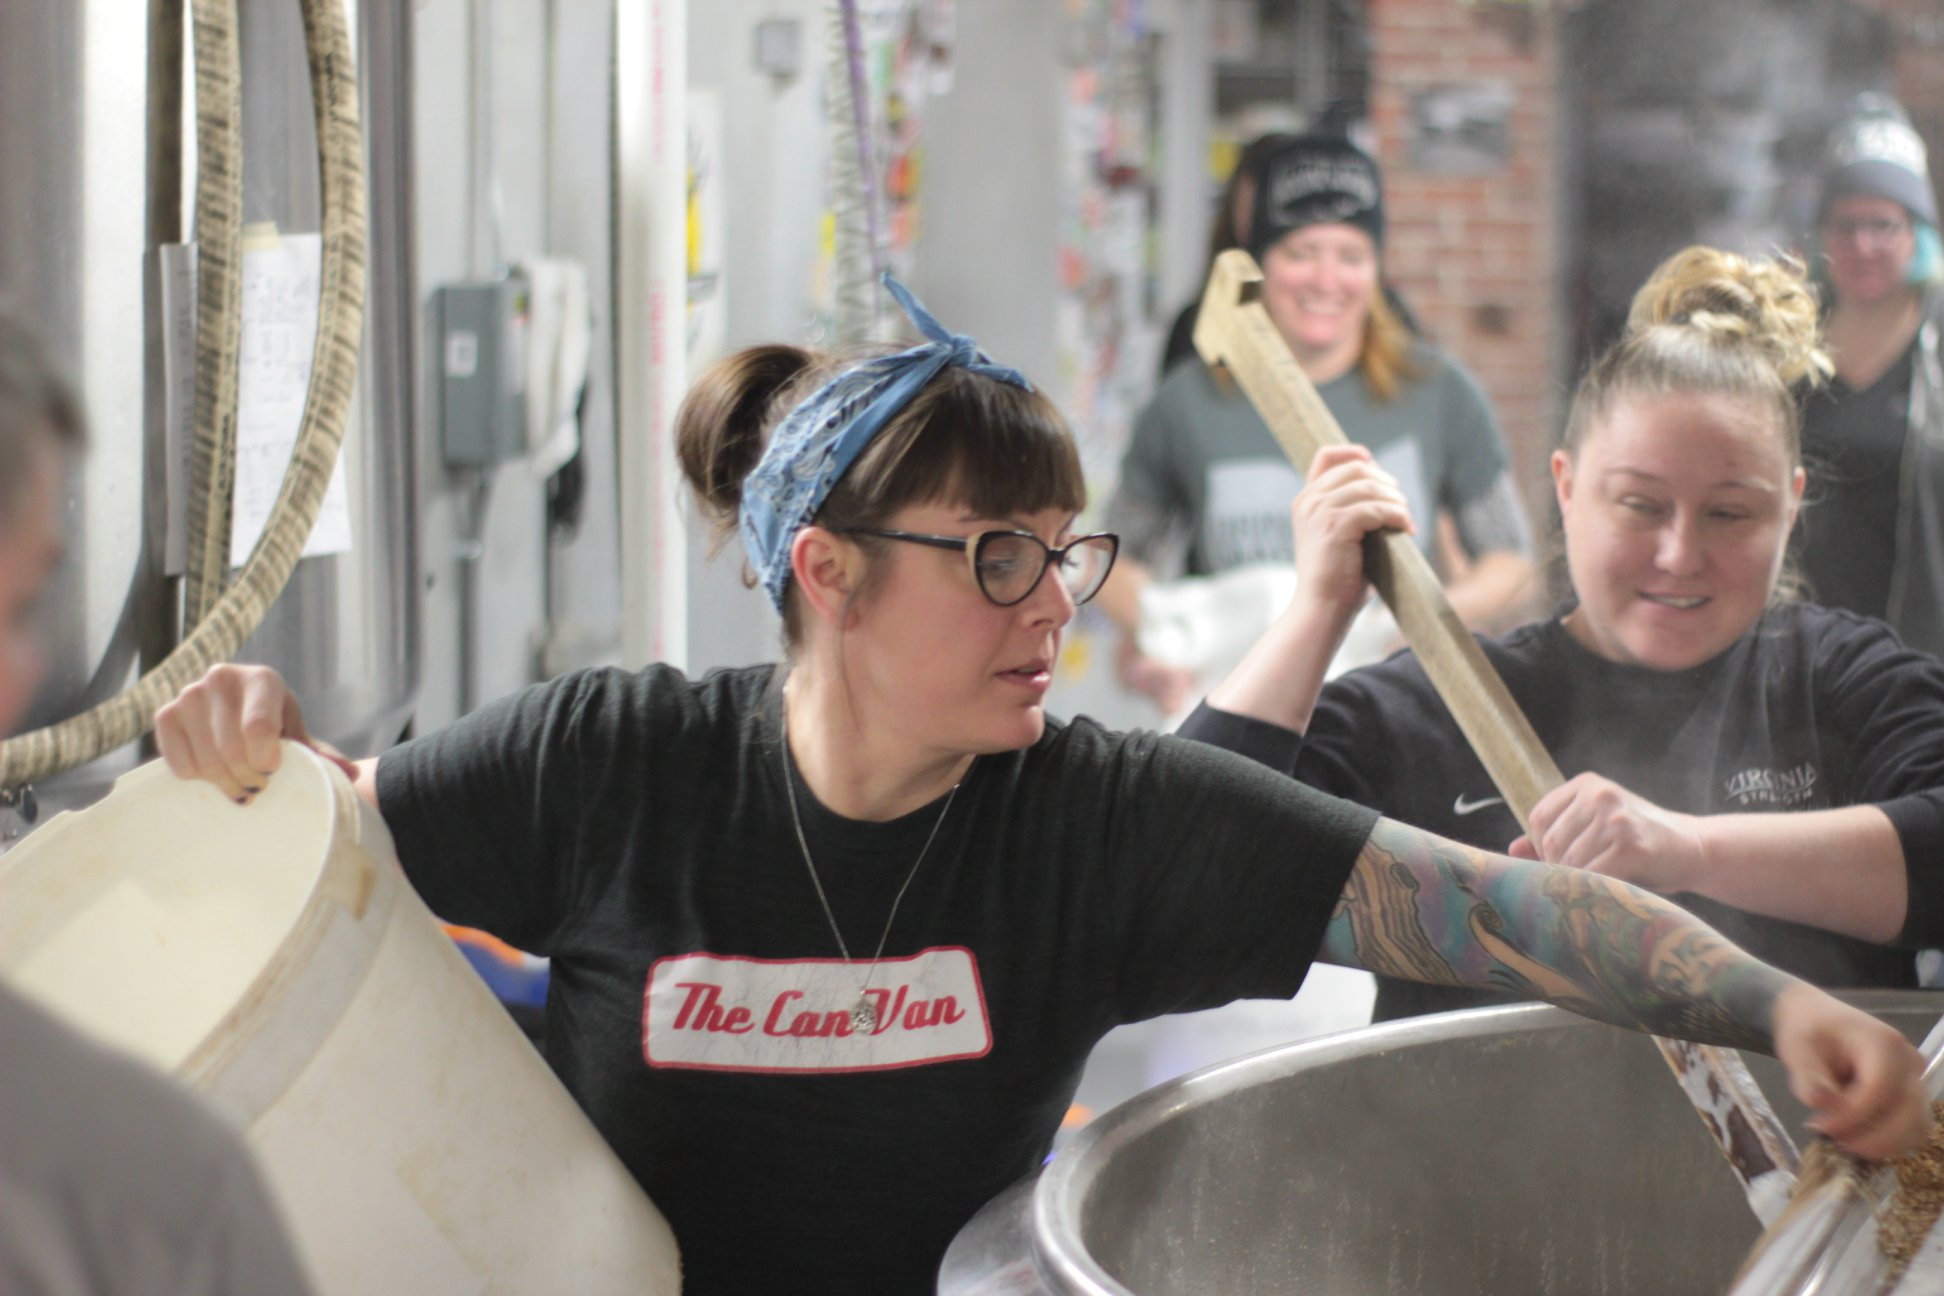 Nichole Endicott from Commonhouse Ales adding grain to the mash, and Michelle Warren from Multiple Brewing mashing in.